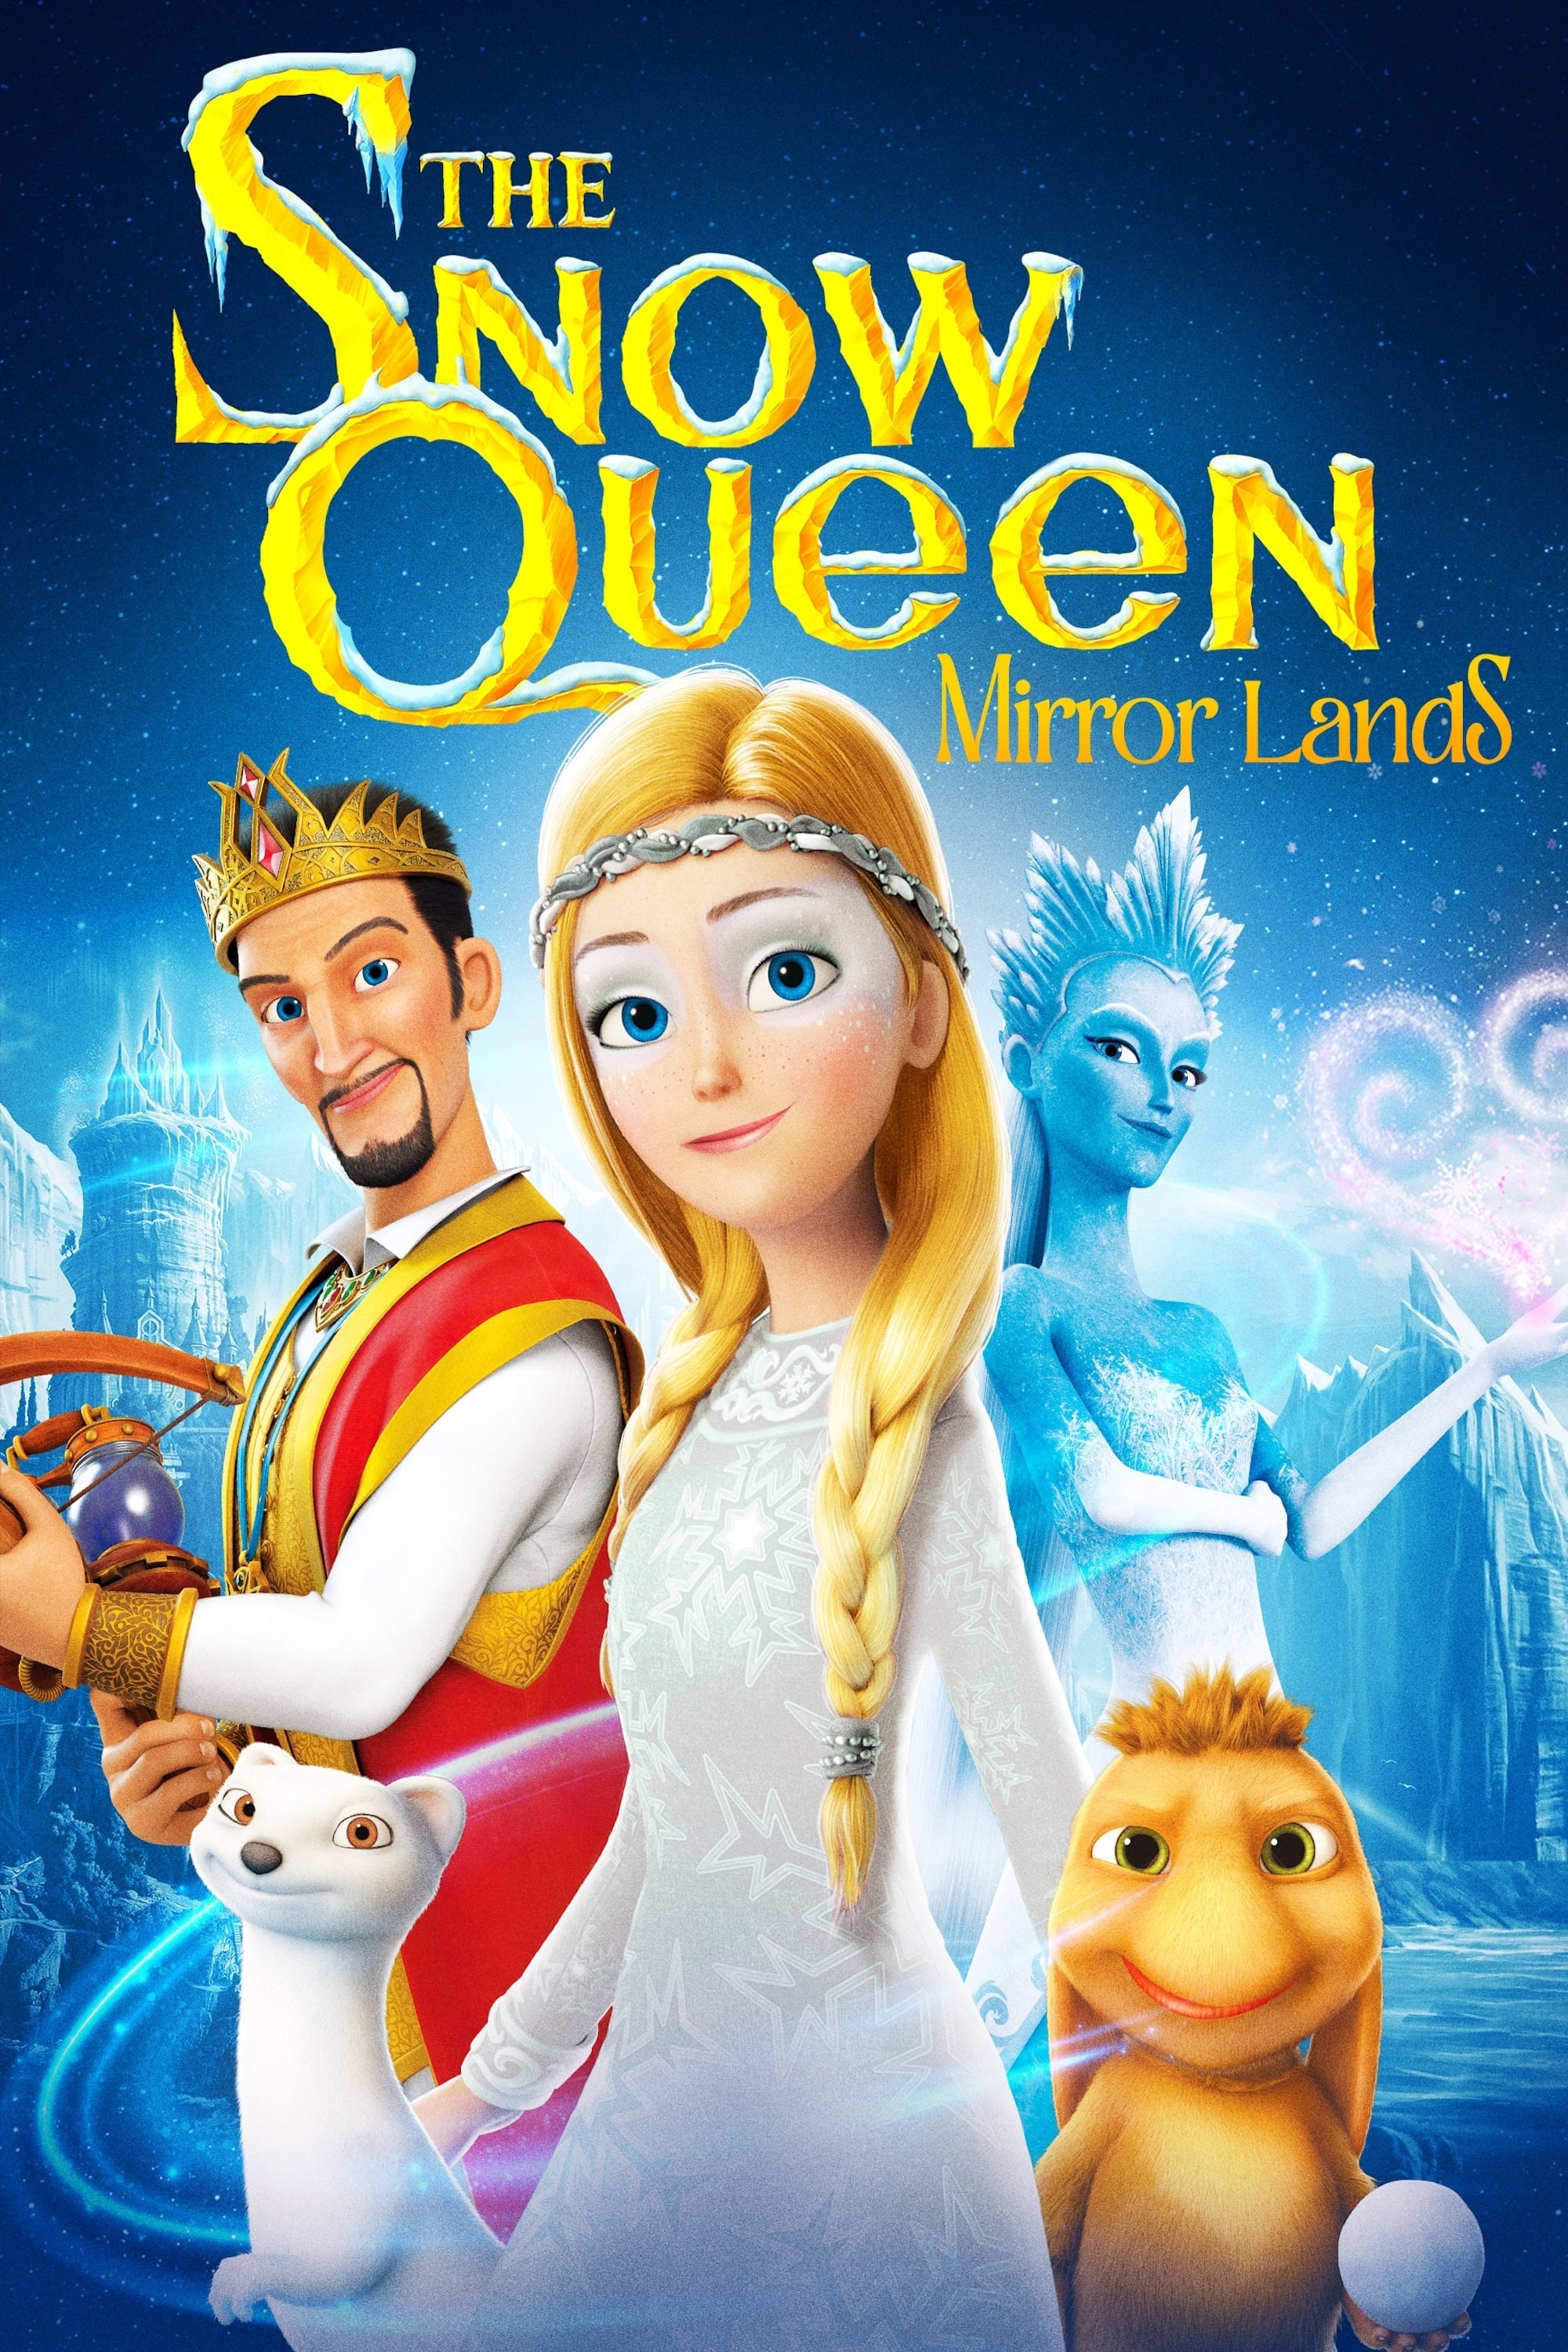 The Snow Queen: Mirror Lands